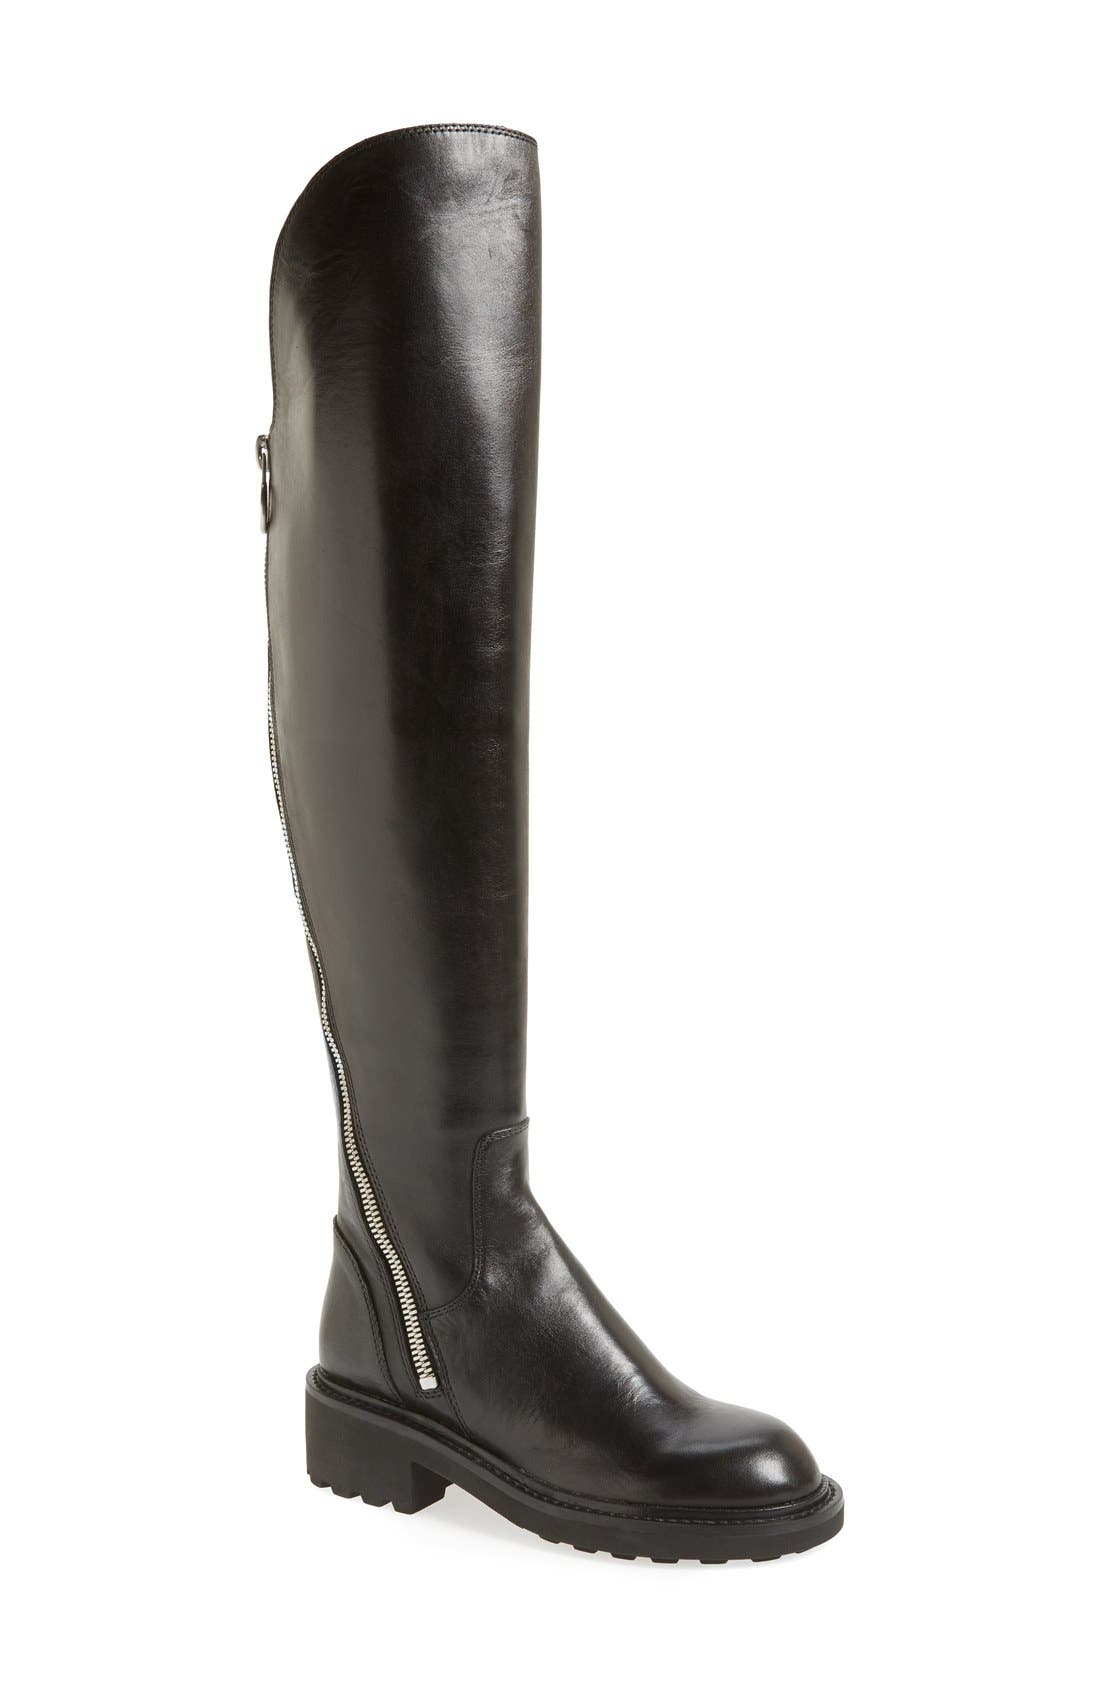 Main Image - Ash 'Seven' Over the Knee Boot (Women)